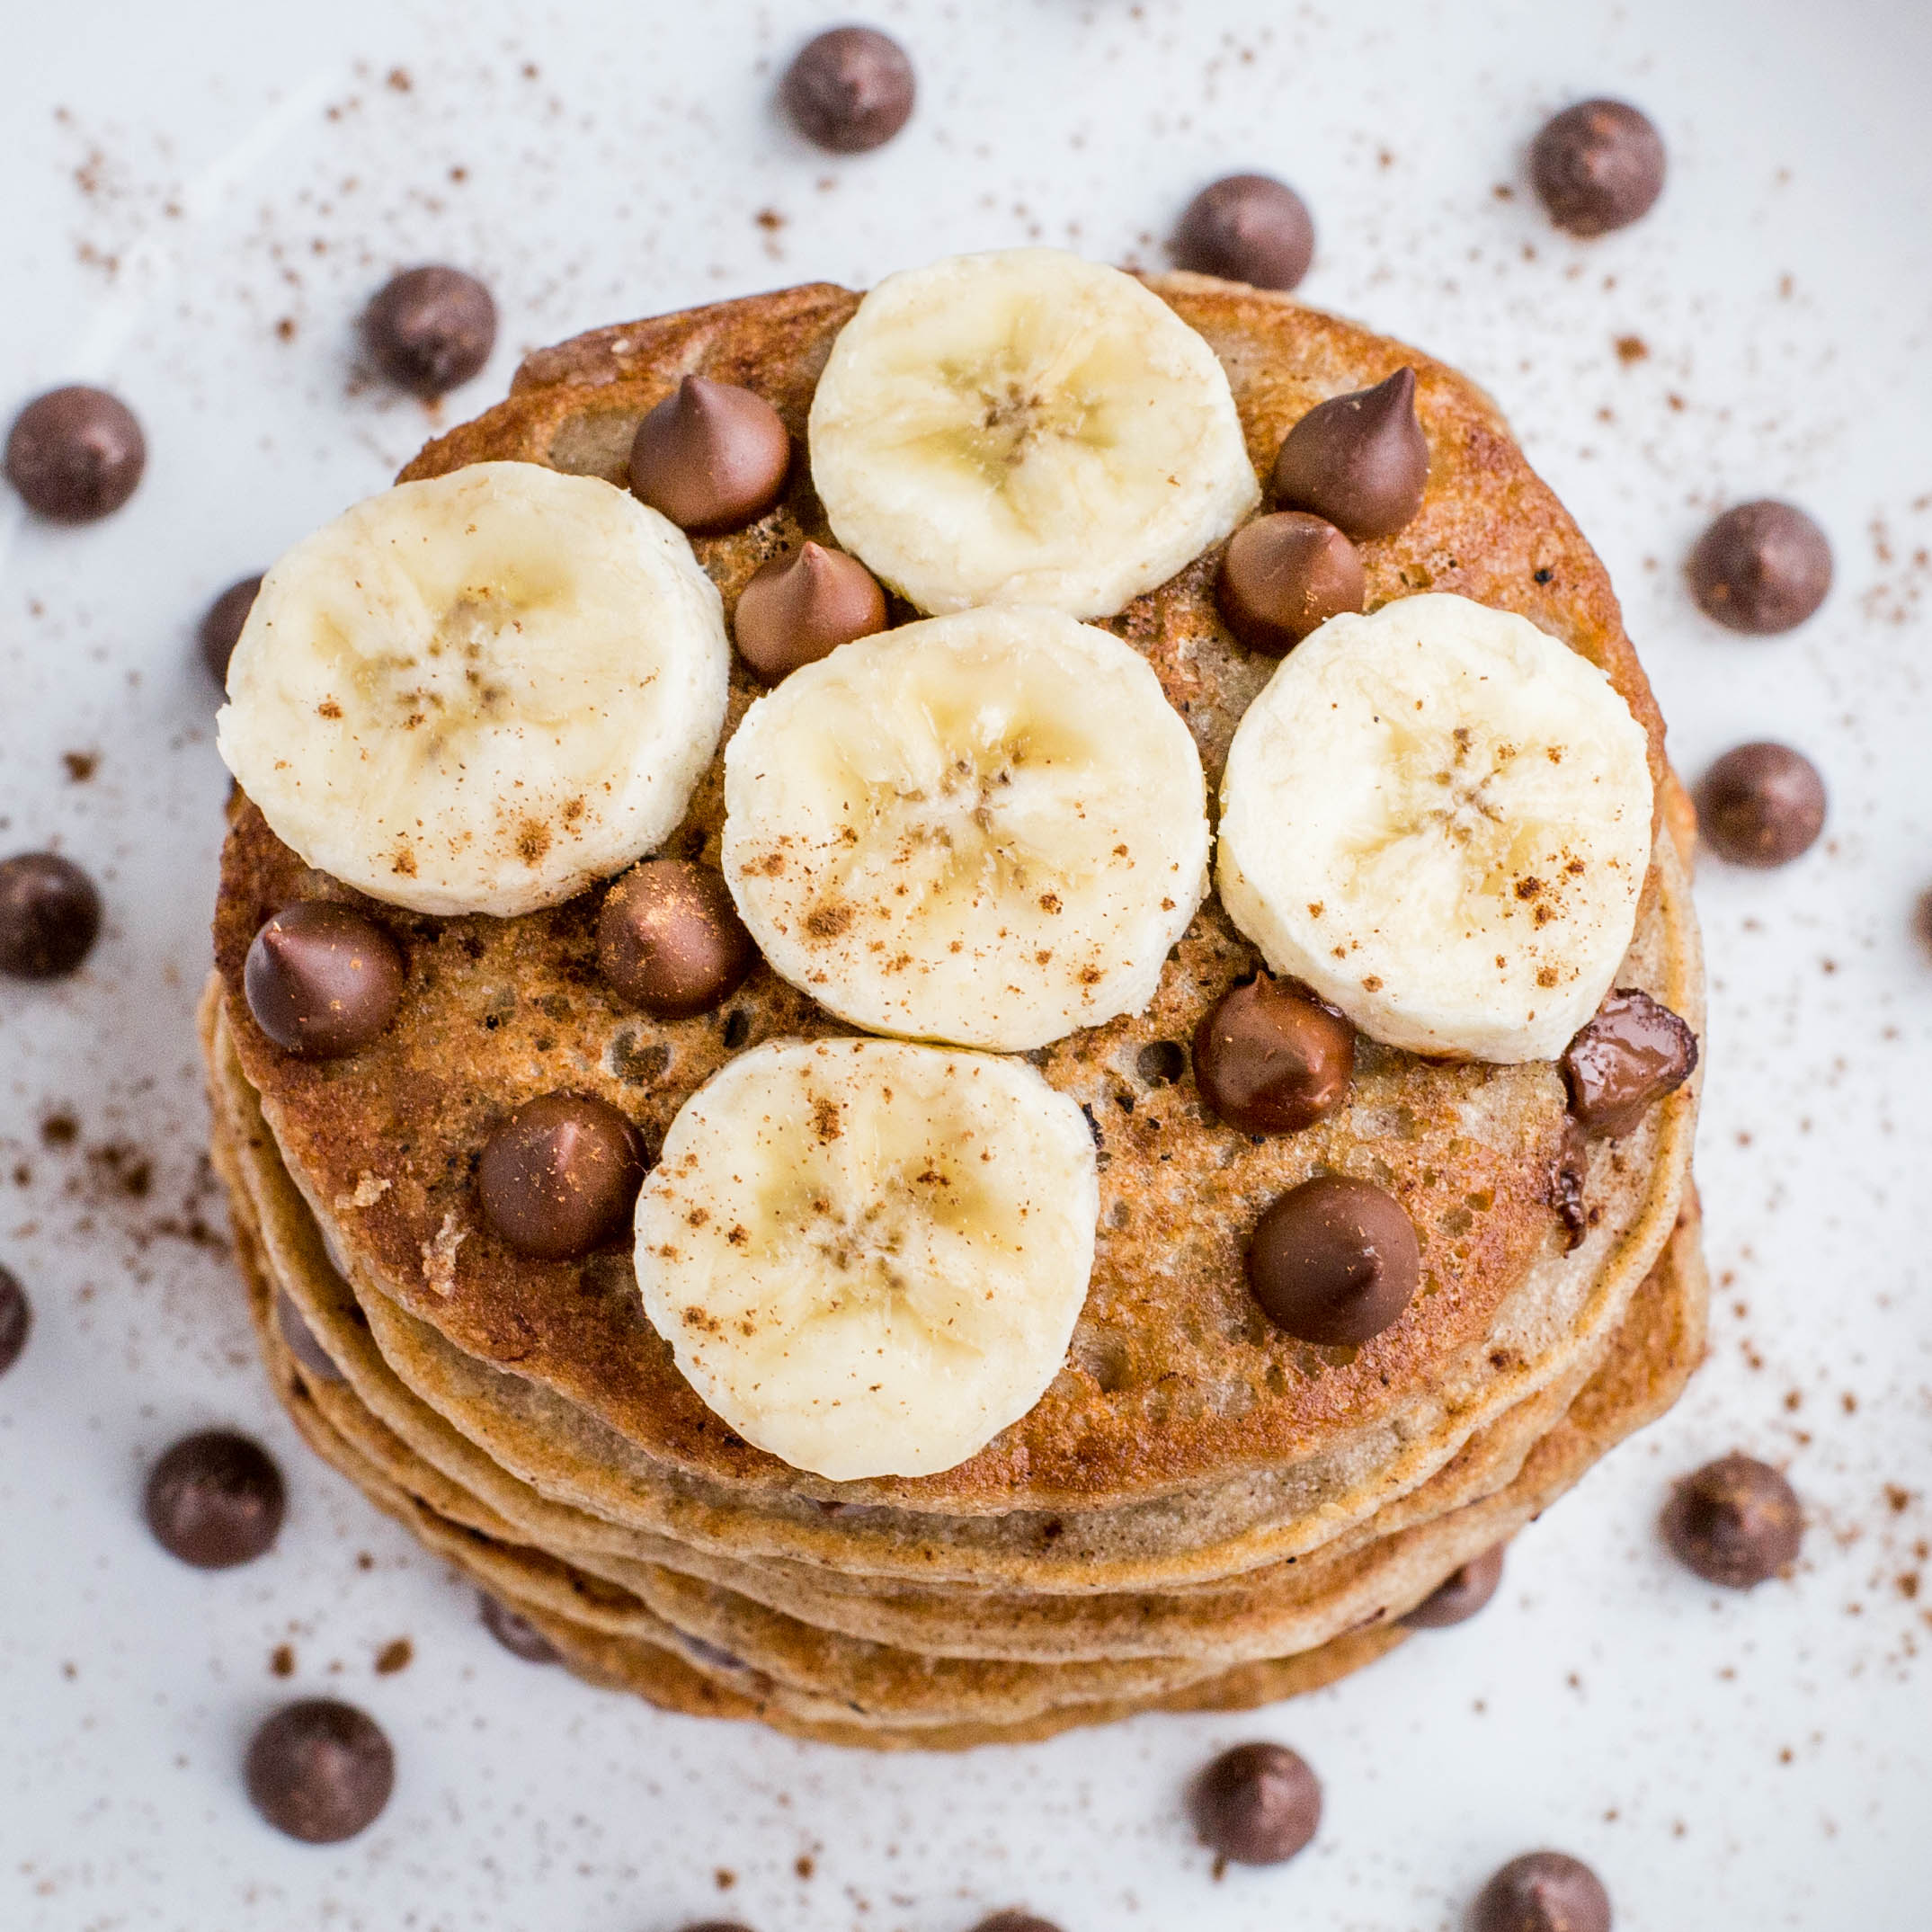 Banana chocolate chip protein pancakes lately i have been getting a lot of questions from my family and friends about my opinion on protein powders and how to use them ccuart Gallery